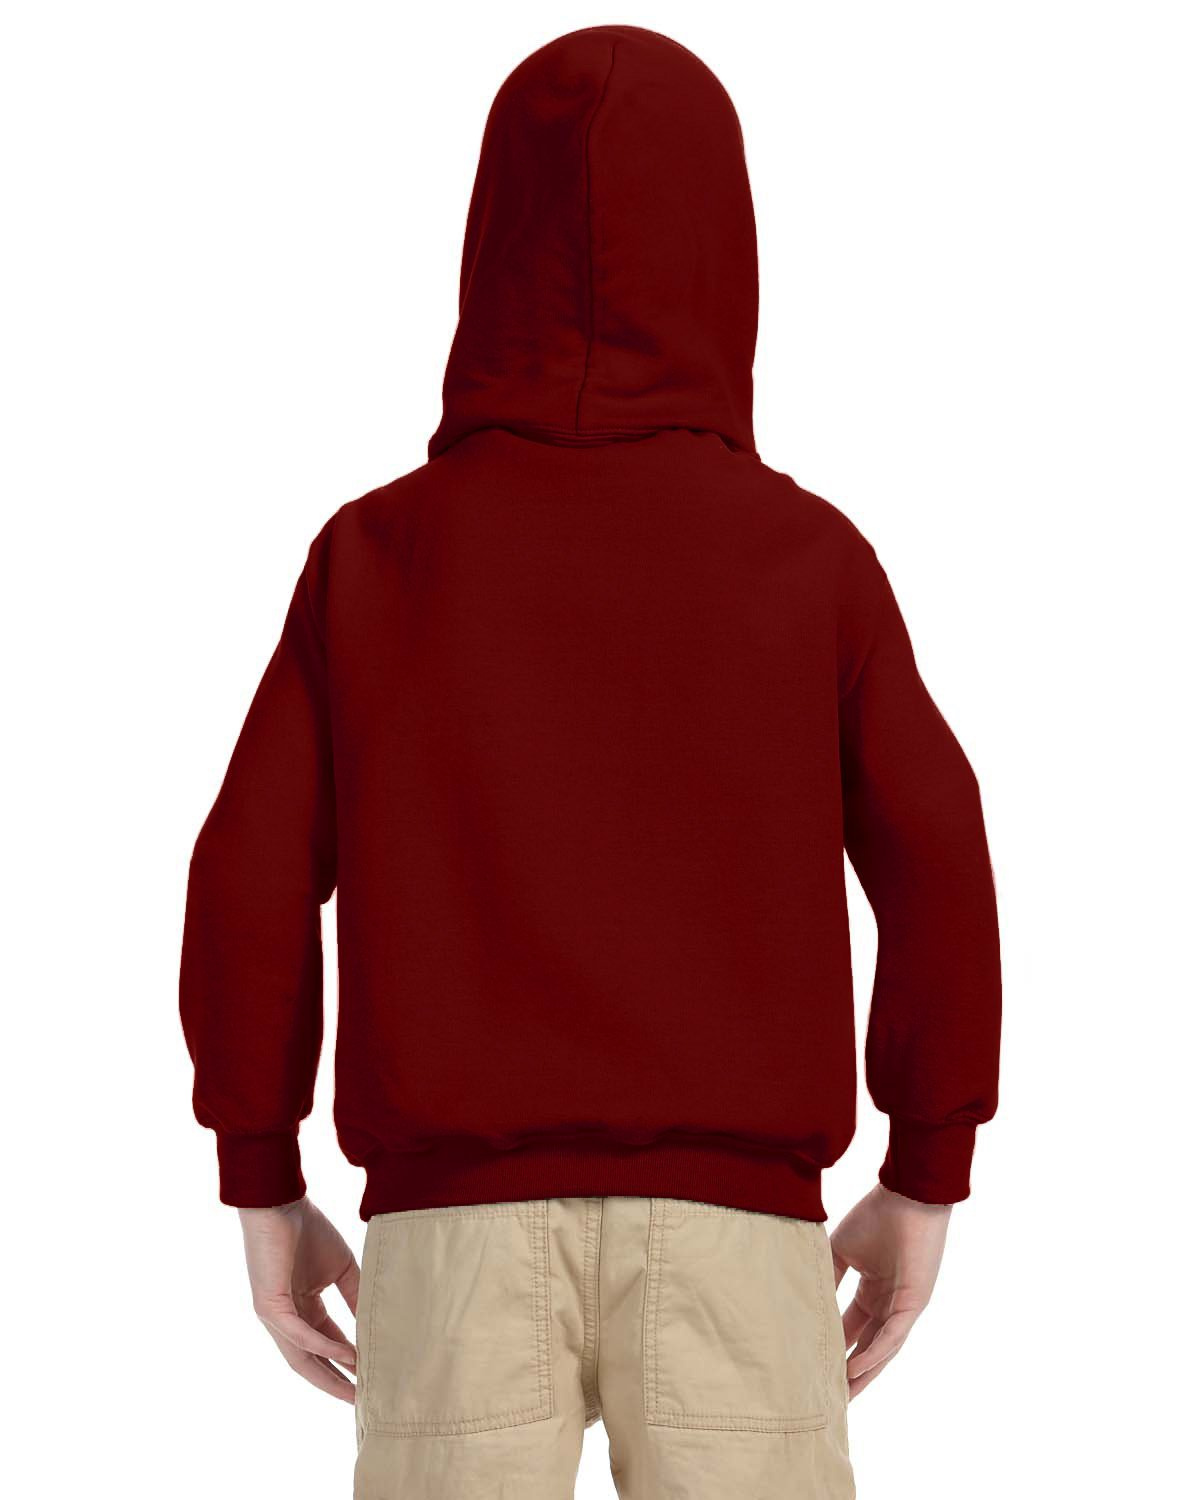 Indica Plateau Kids Hoodie I'd Rather be Camping Medium Red Hoodie by Indica Plateau (Image #4)